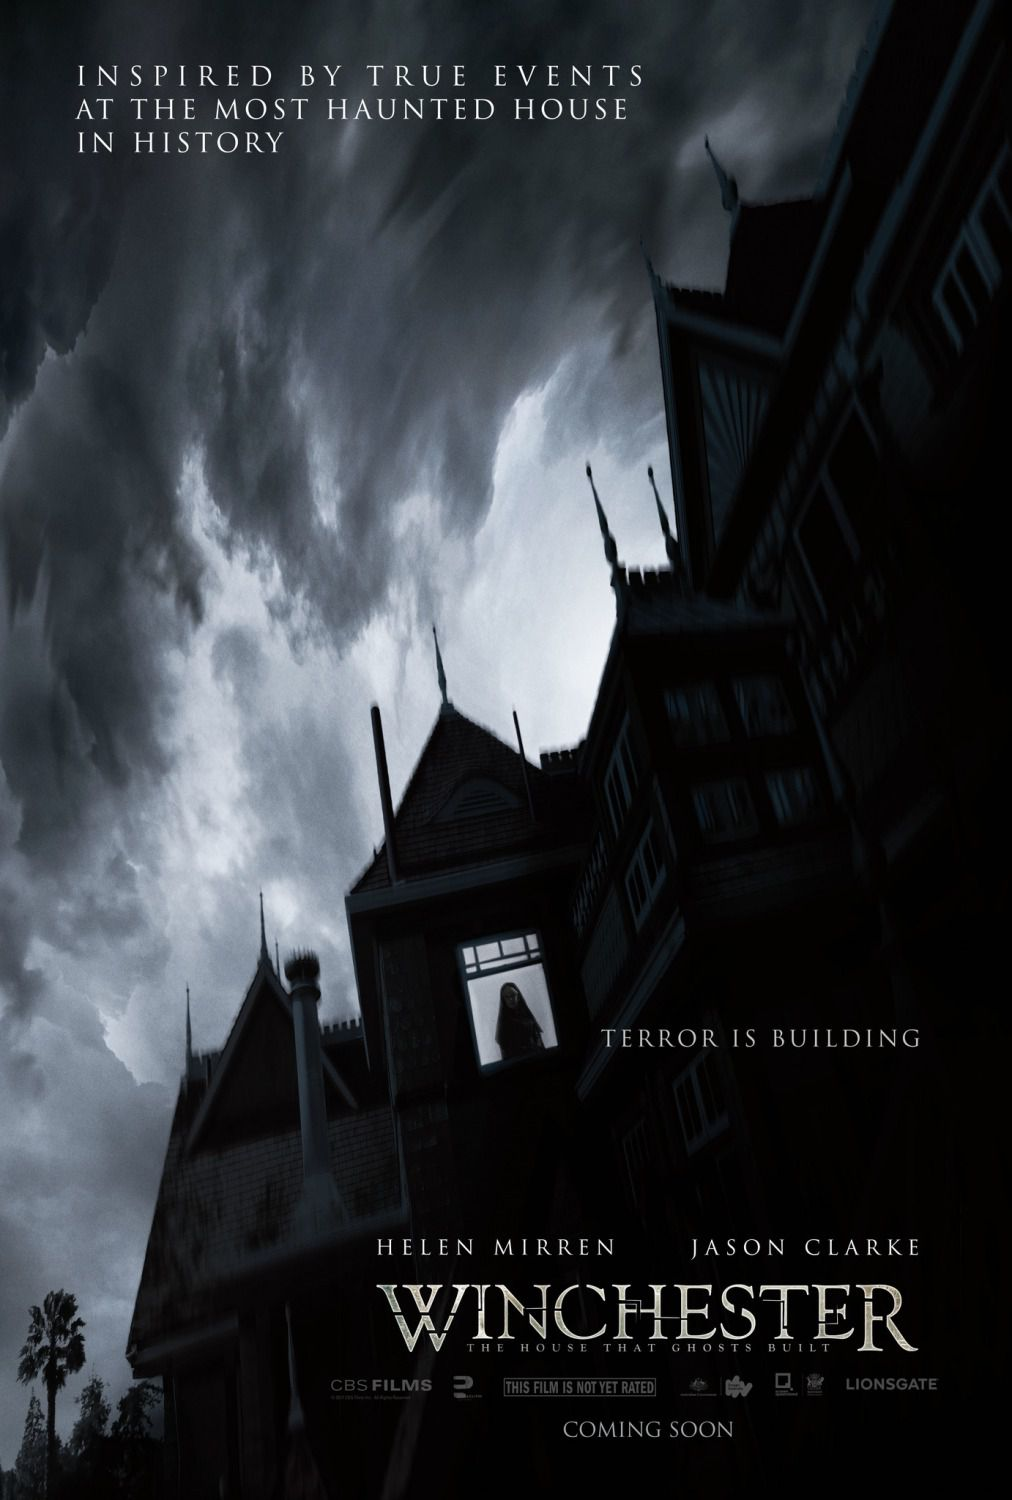 Winchester the house that ghosts built - La Casa costruita dagli Spiriti - horror film poster 2018